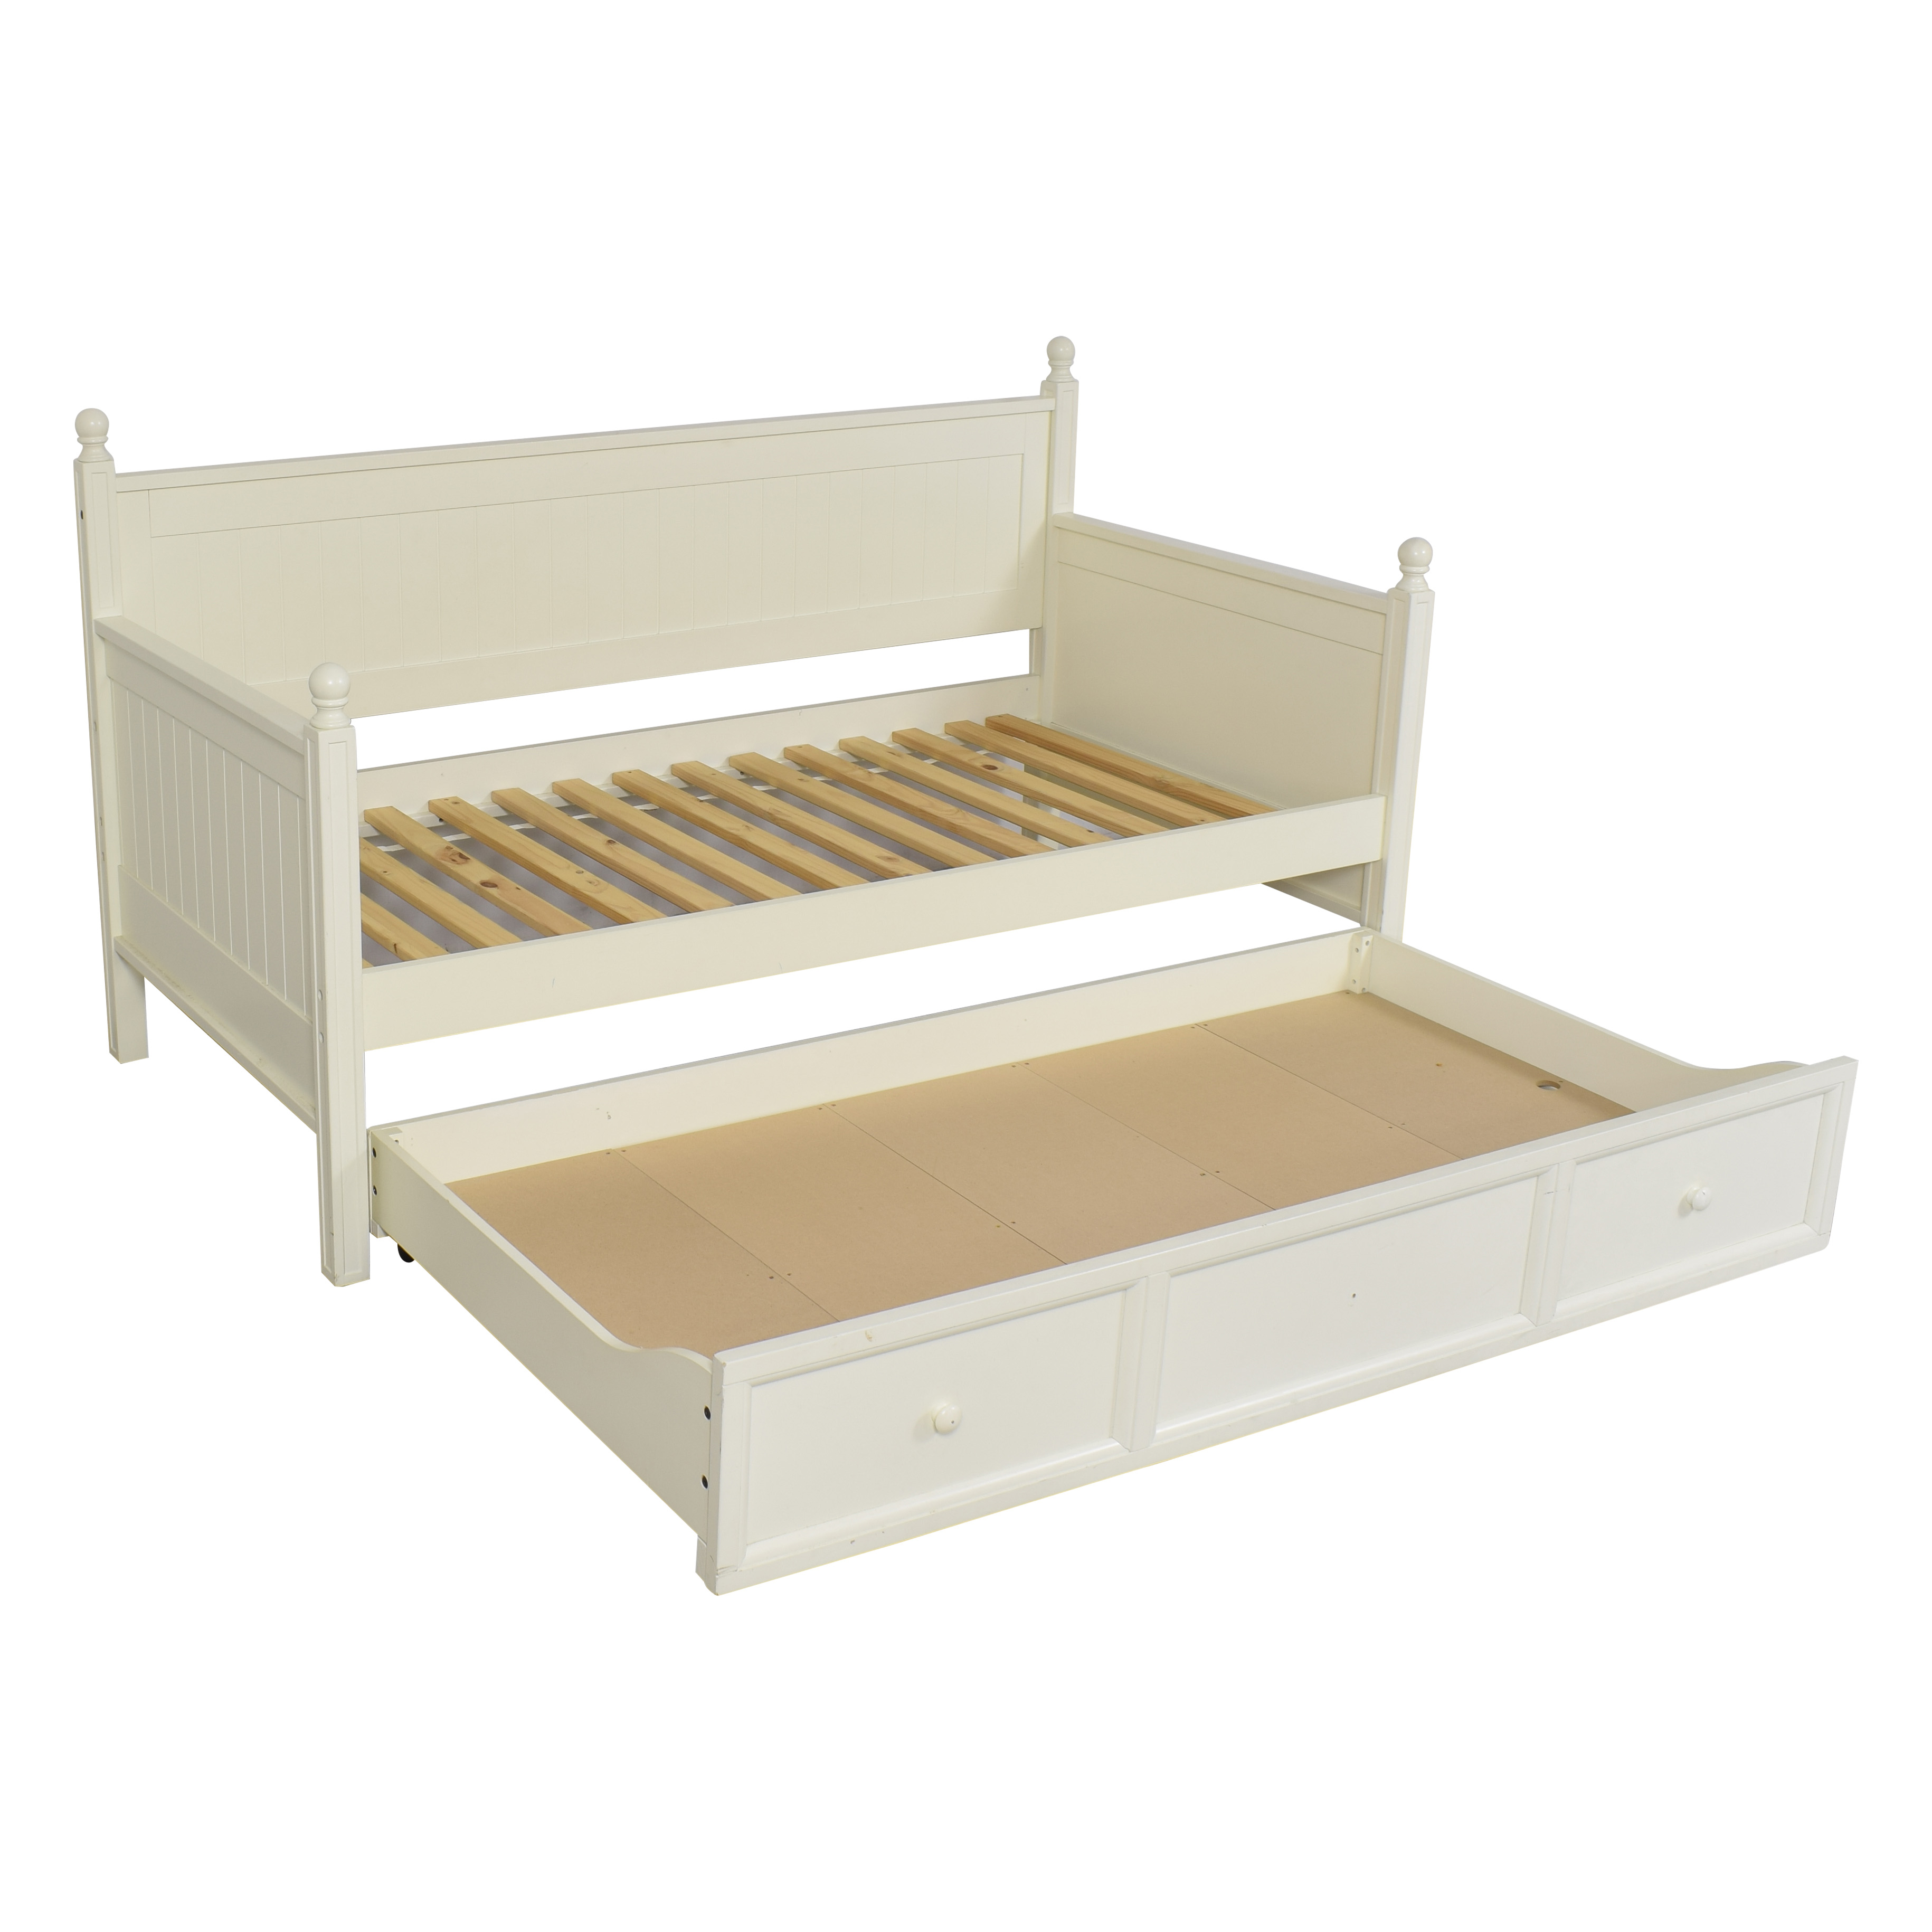 Pottery Barn Teen Hampton Twin Daybed and Trundle / Beds